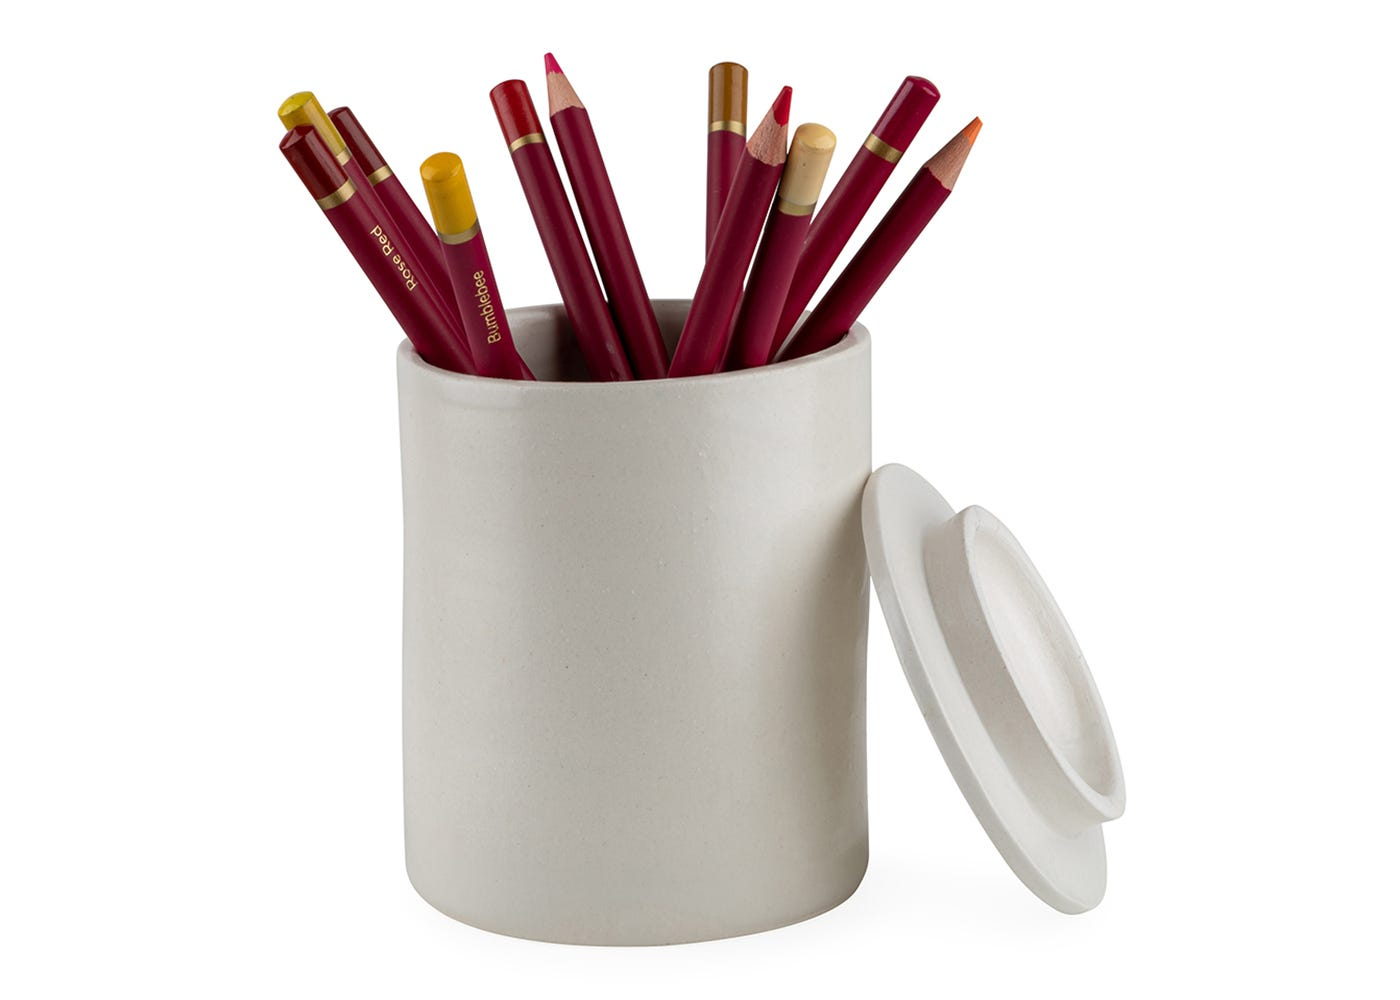 Porcelain vessel can be reused to store utensils